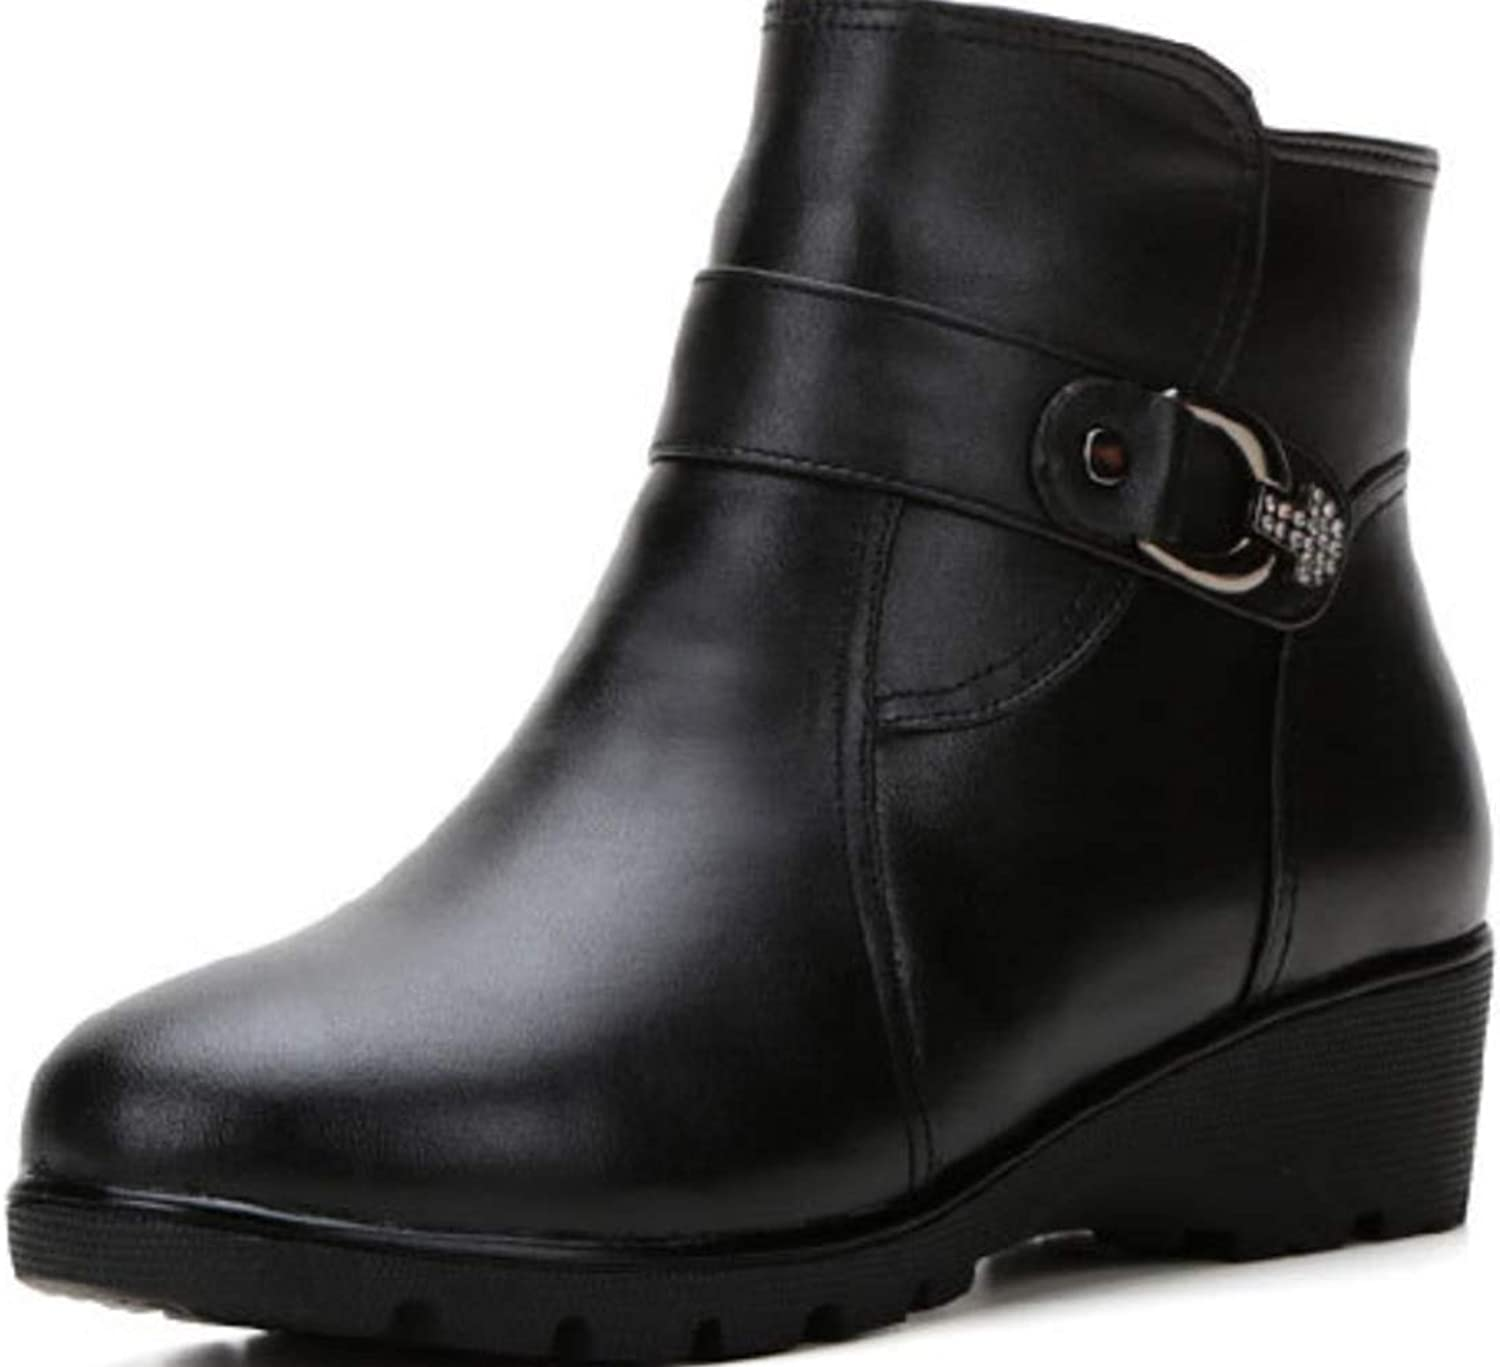 Shiney Women's Cotton shoes Wool Boots Warm Leather Round Head Short Boots